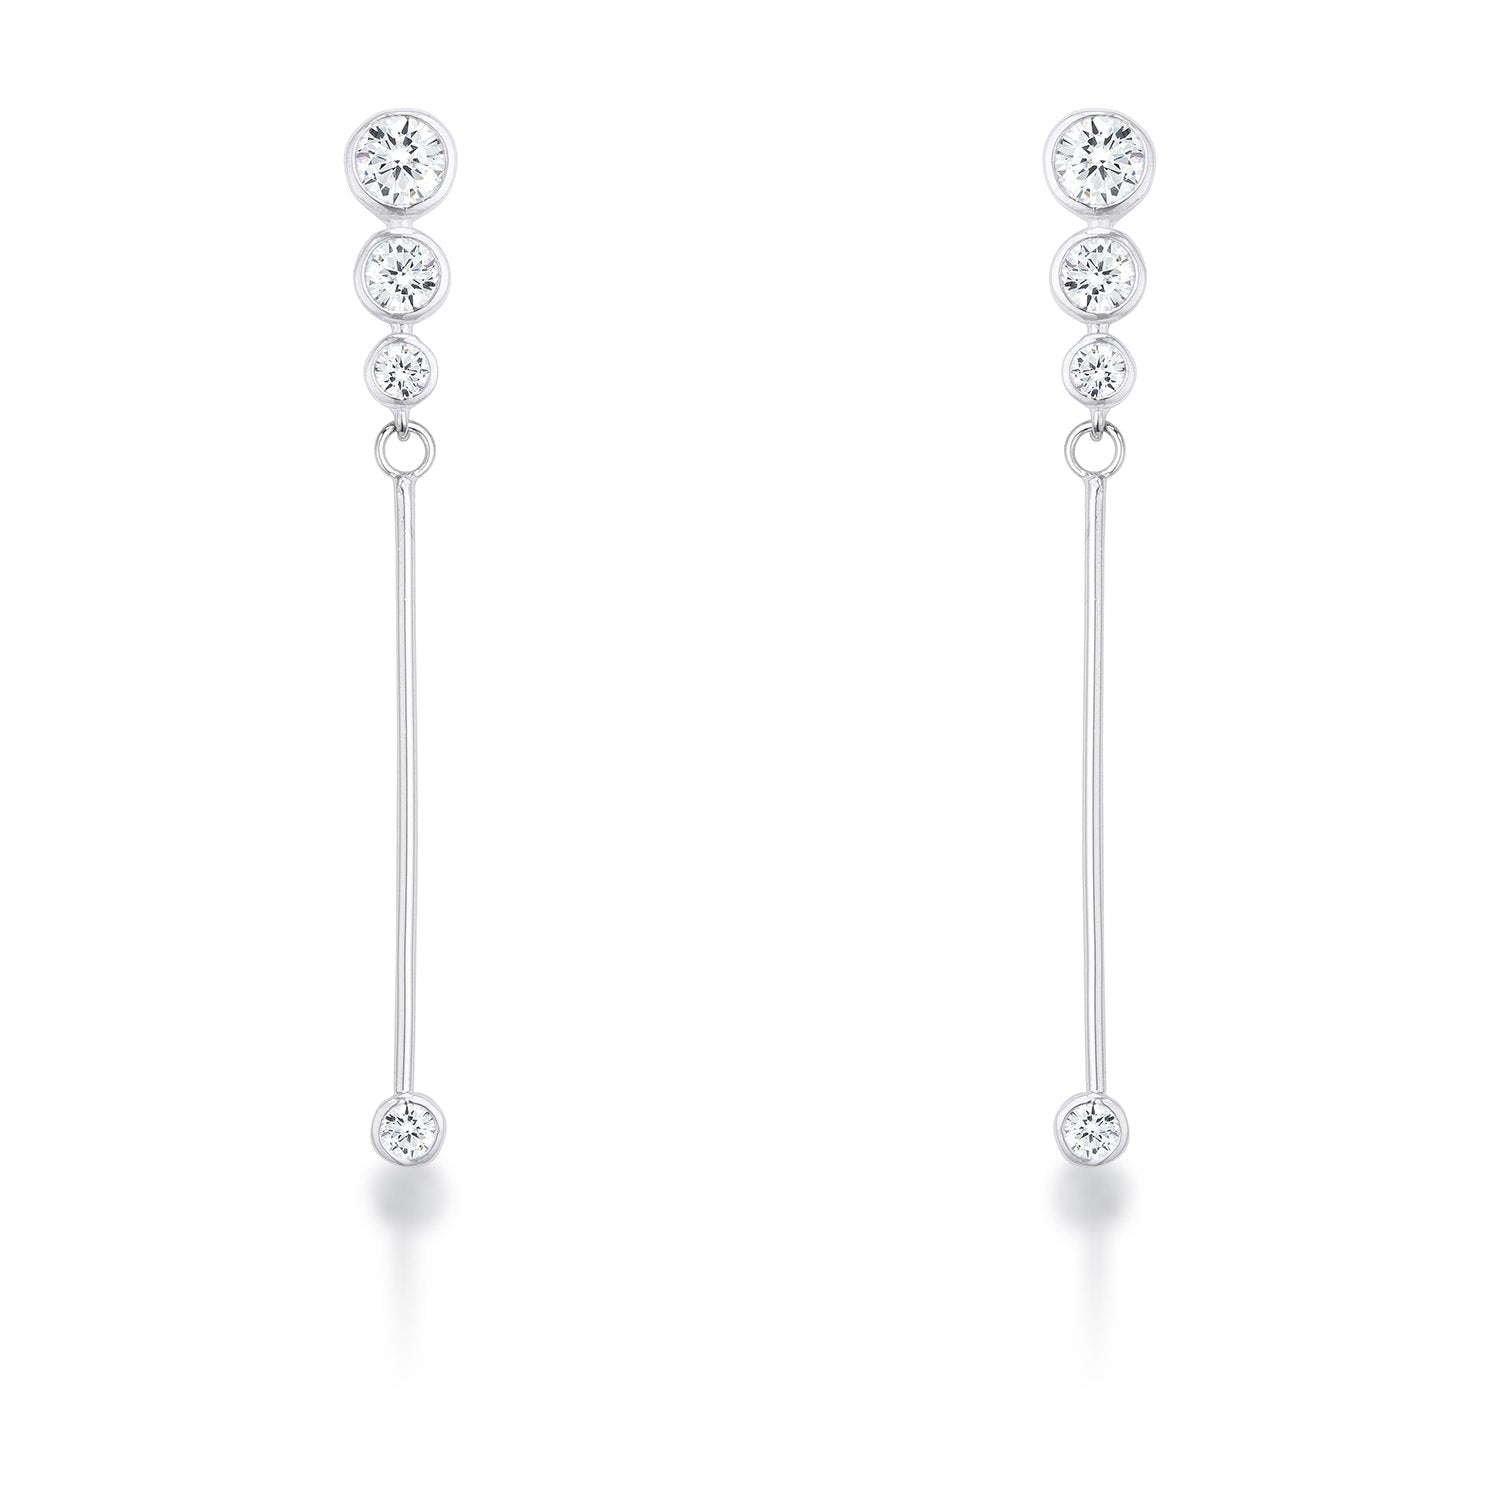 1.2Ct Graduated Rhodium Plated Drop Cubic Zirconia Earrings. - E01956R-C01